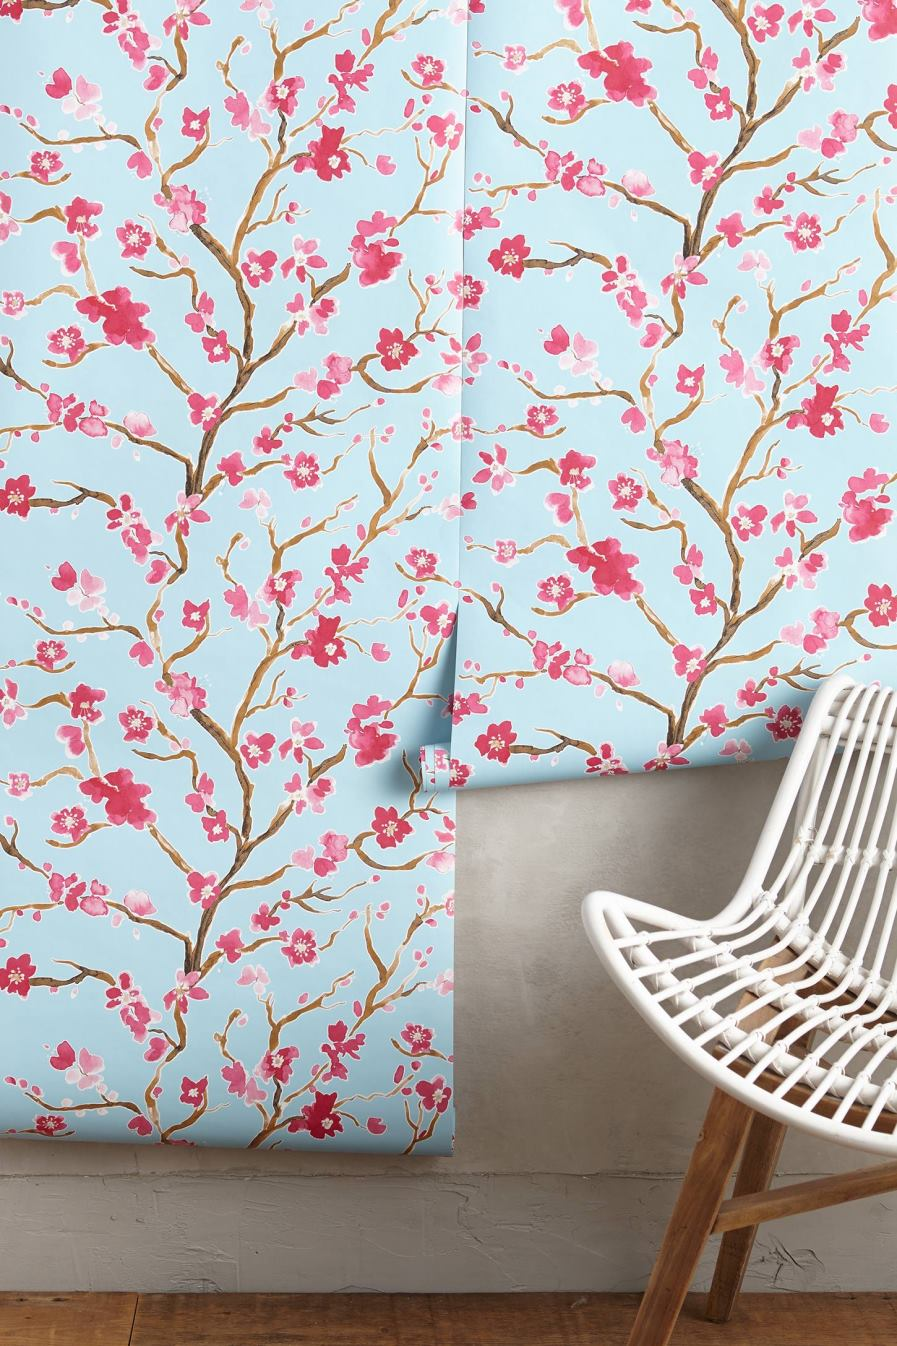 Cherry blossom wallpaper from Anthropologie